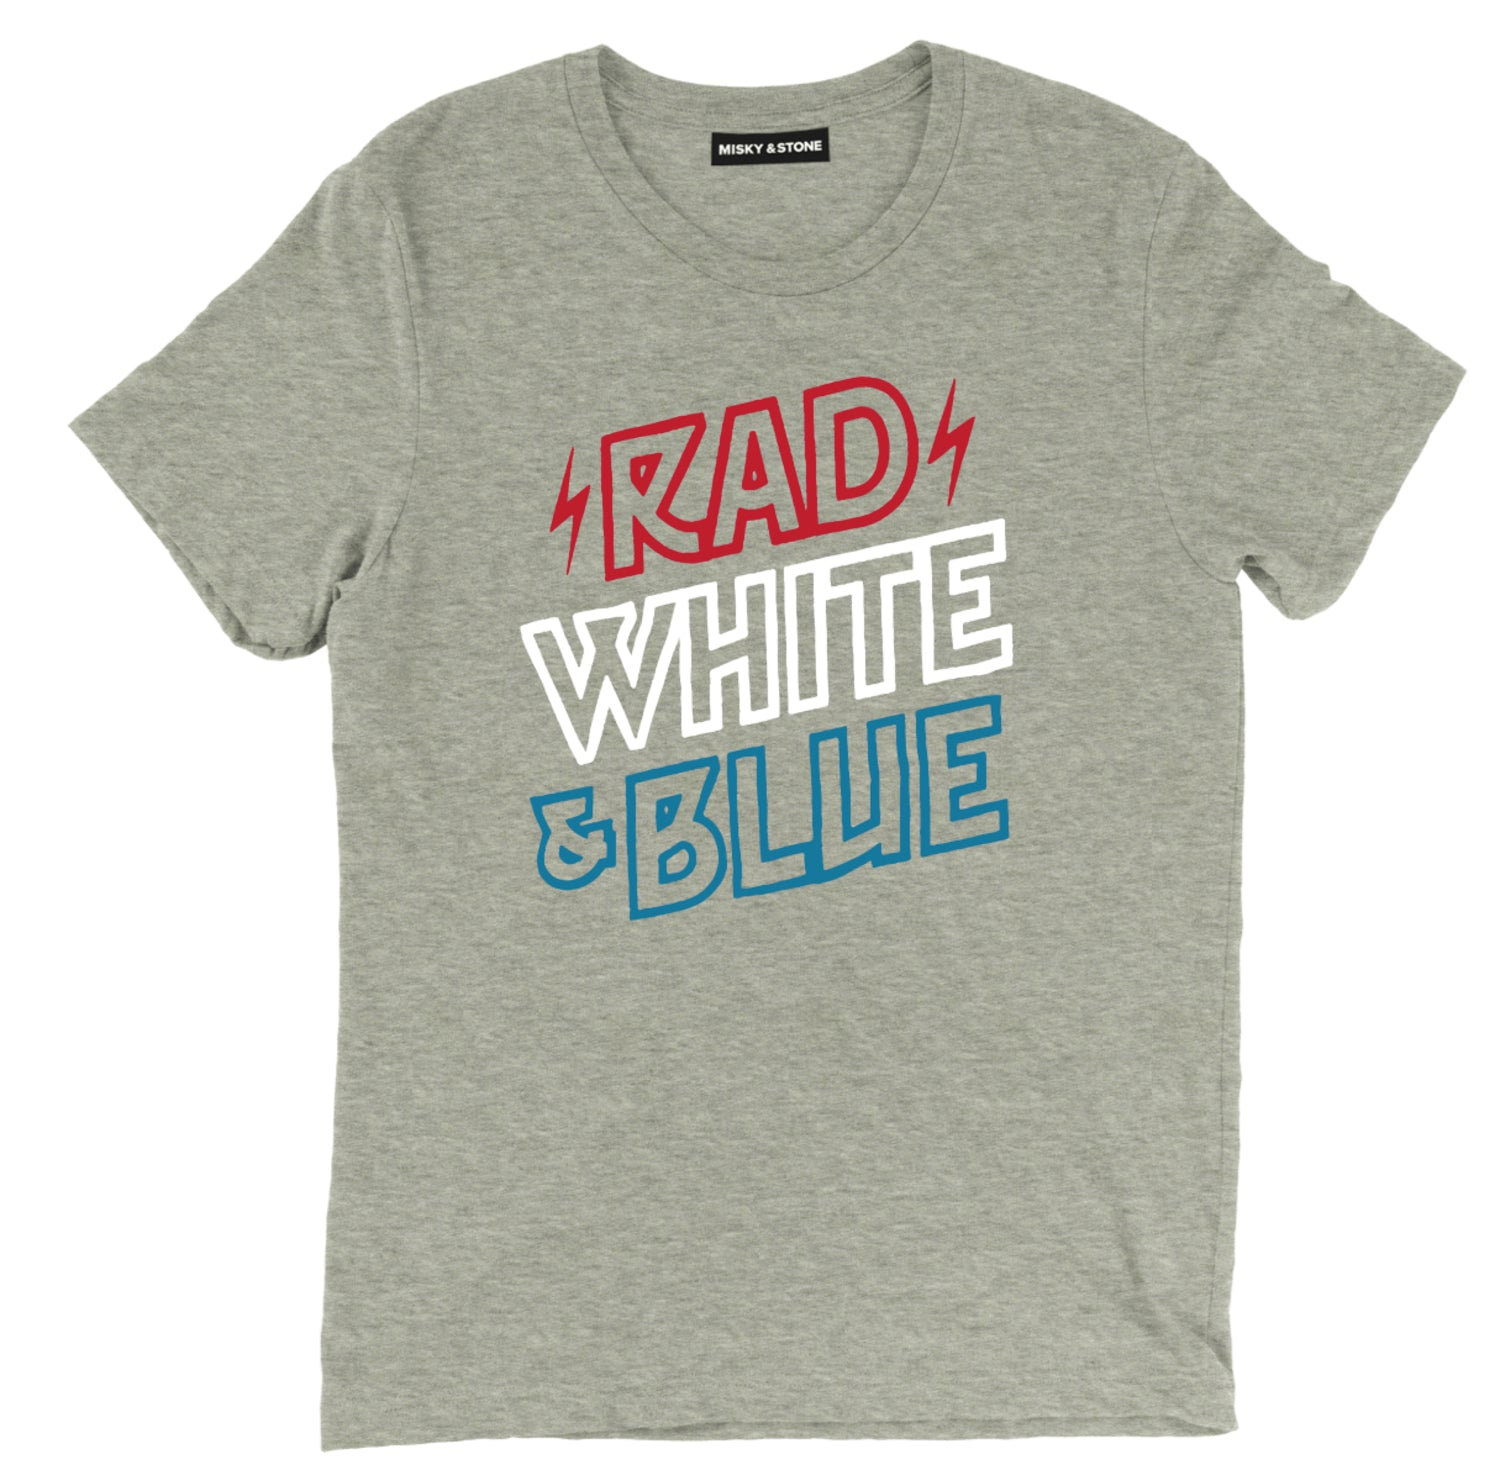 Rad White & Blue Tee